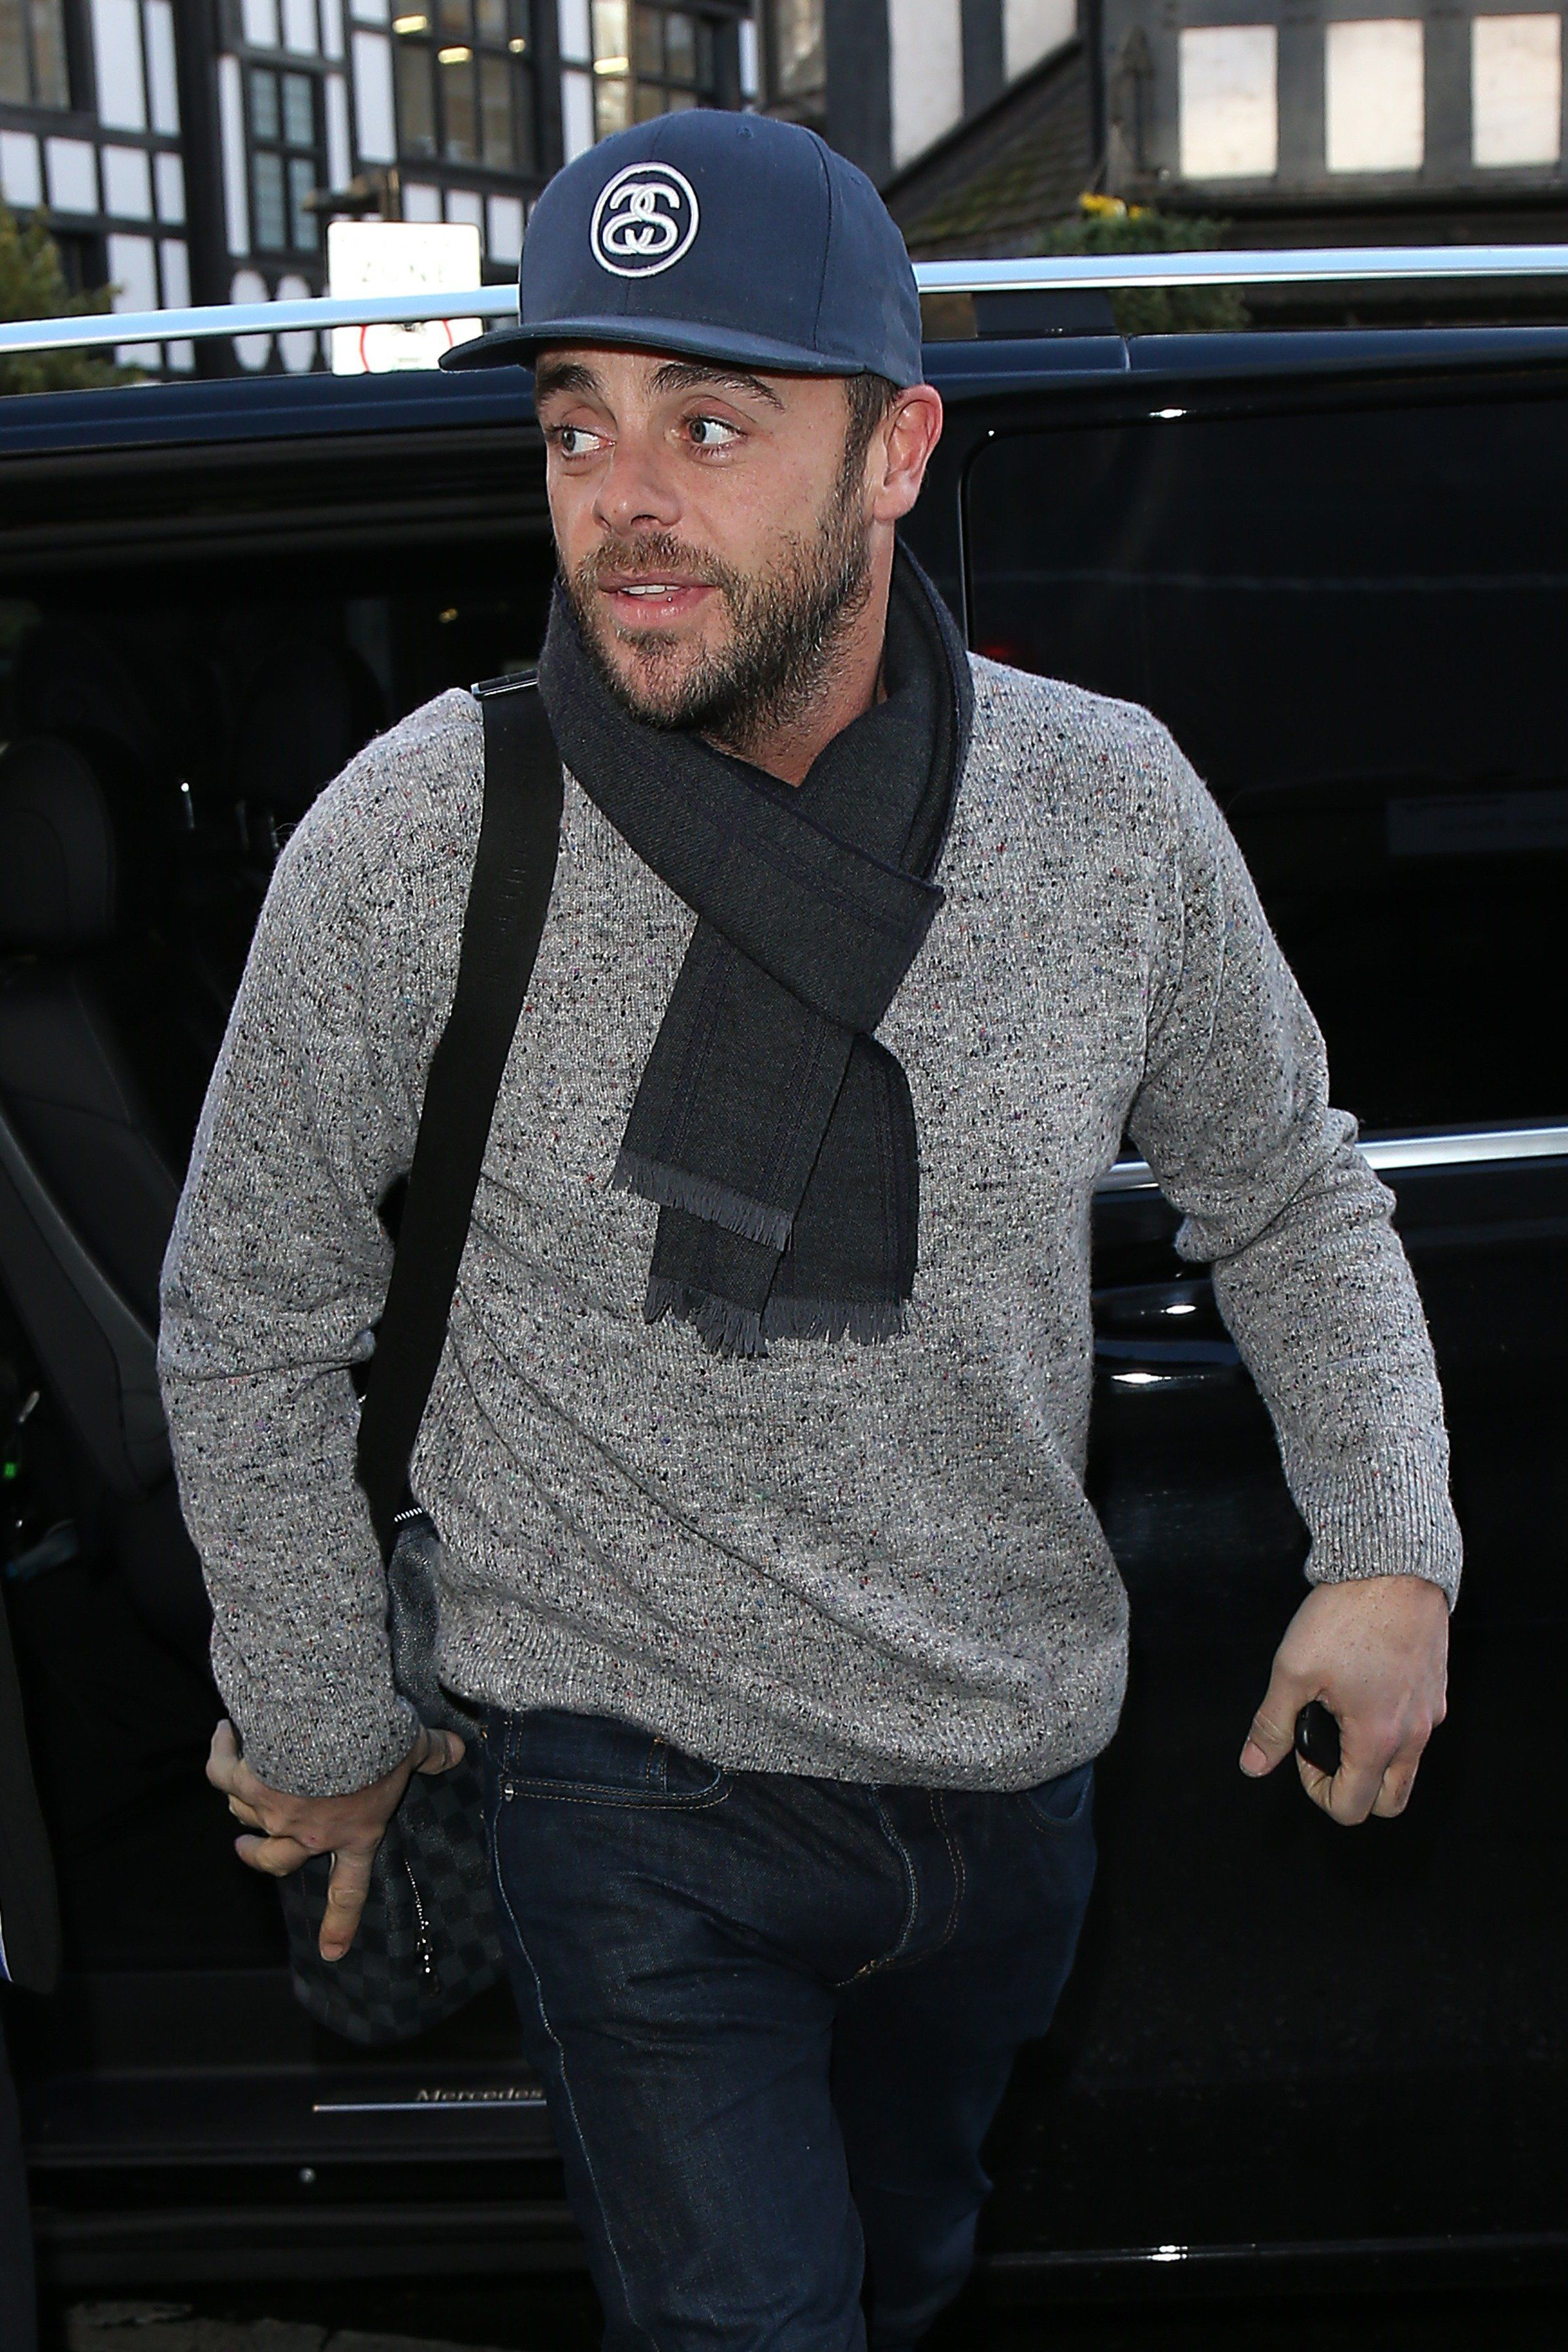 Ant McPartlin Arrested On Suspicion Of Drink Driving After Car